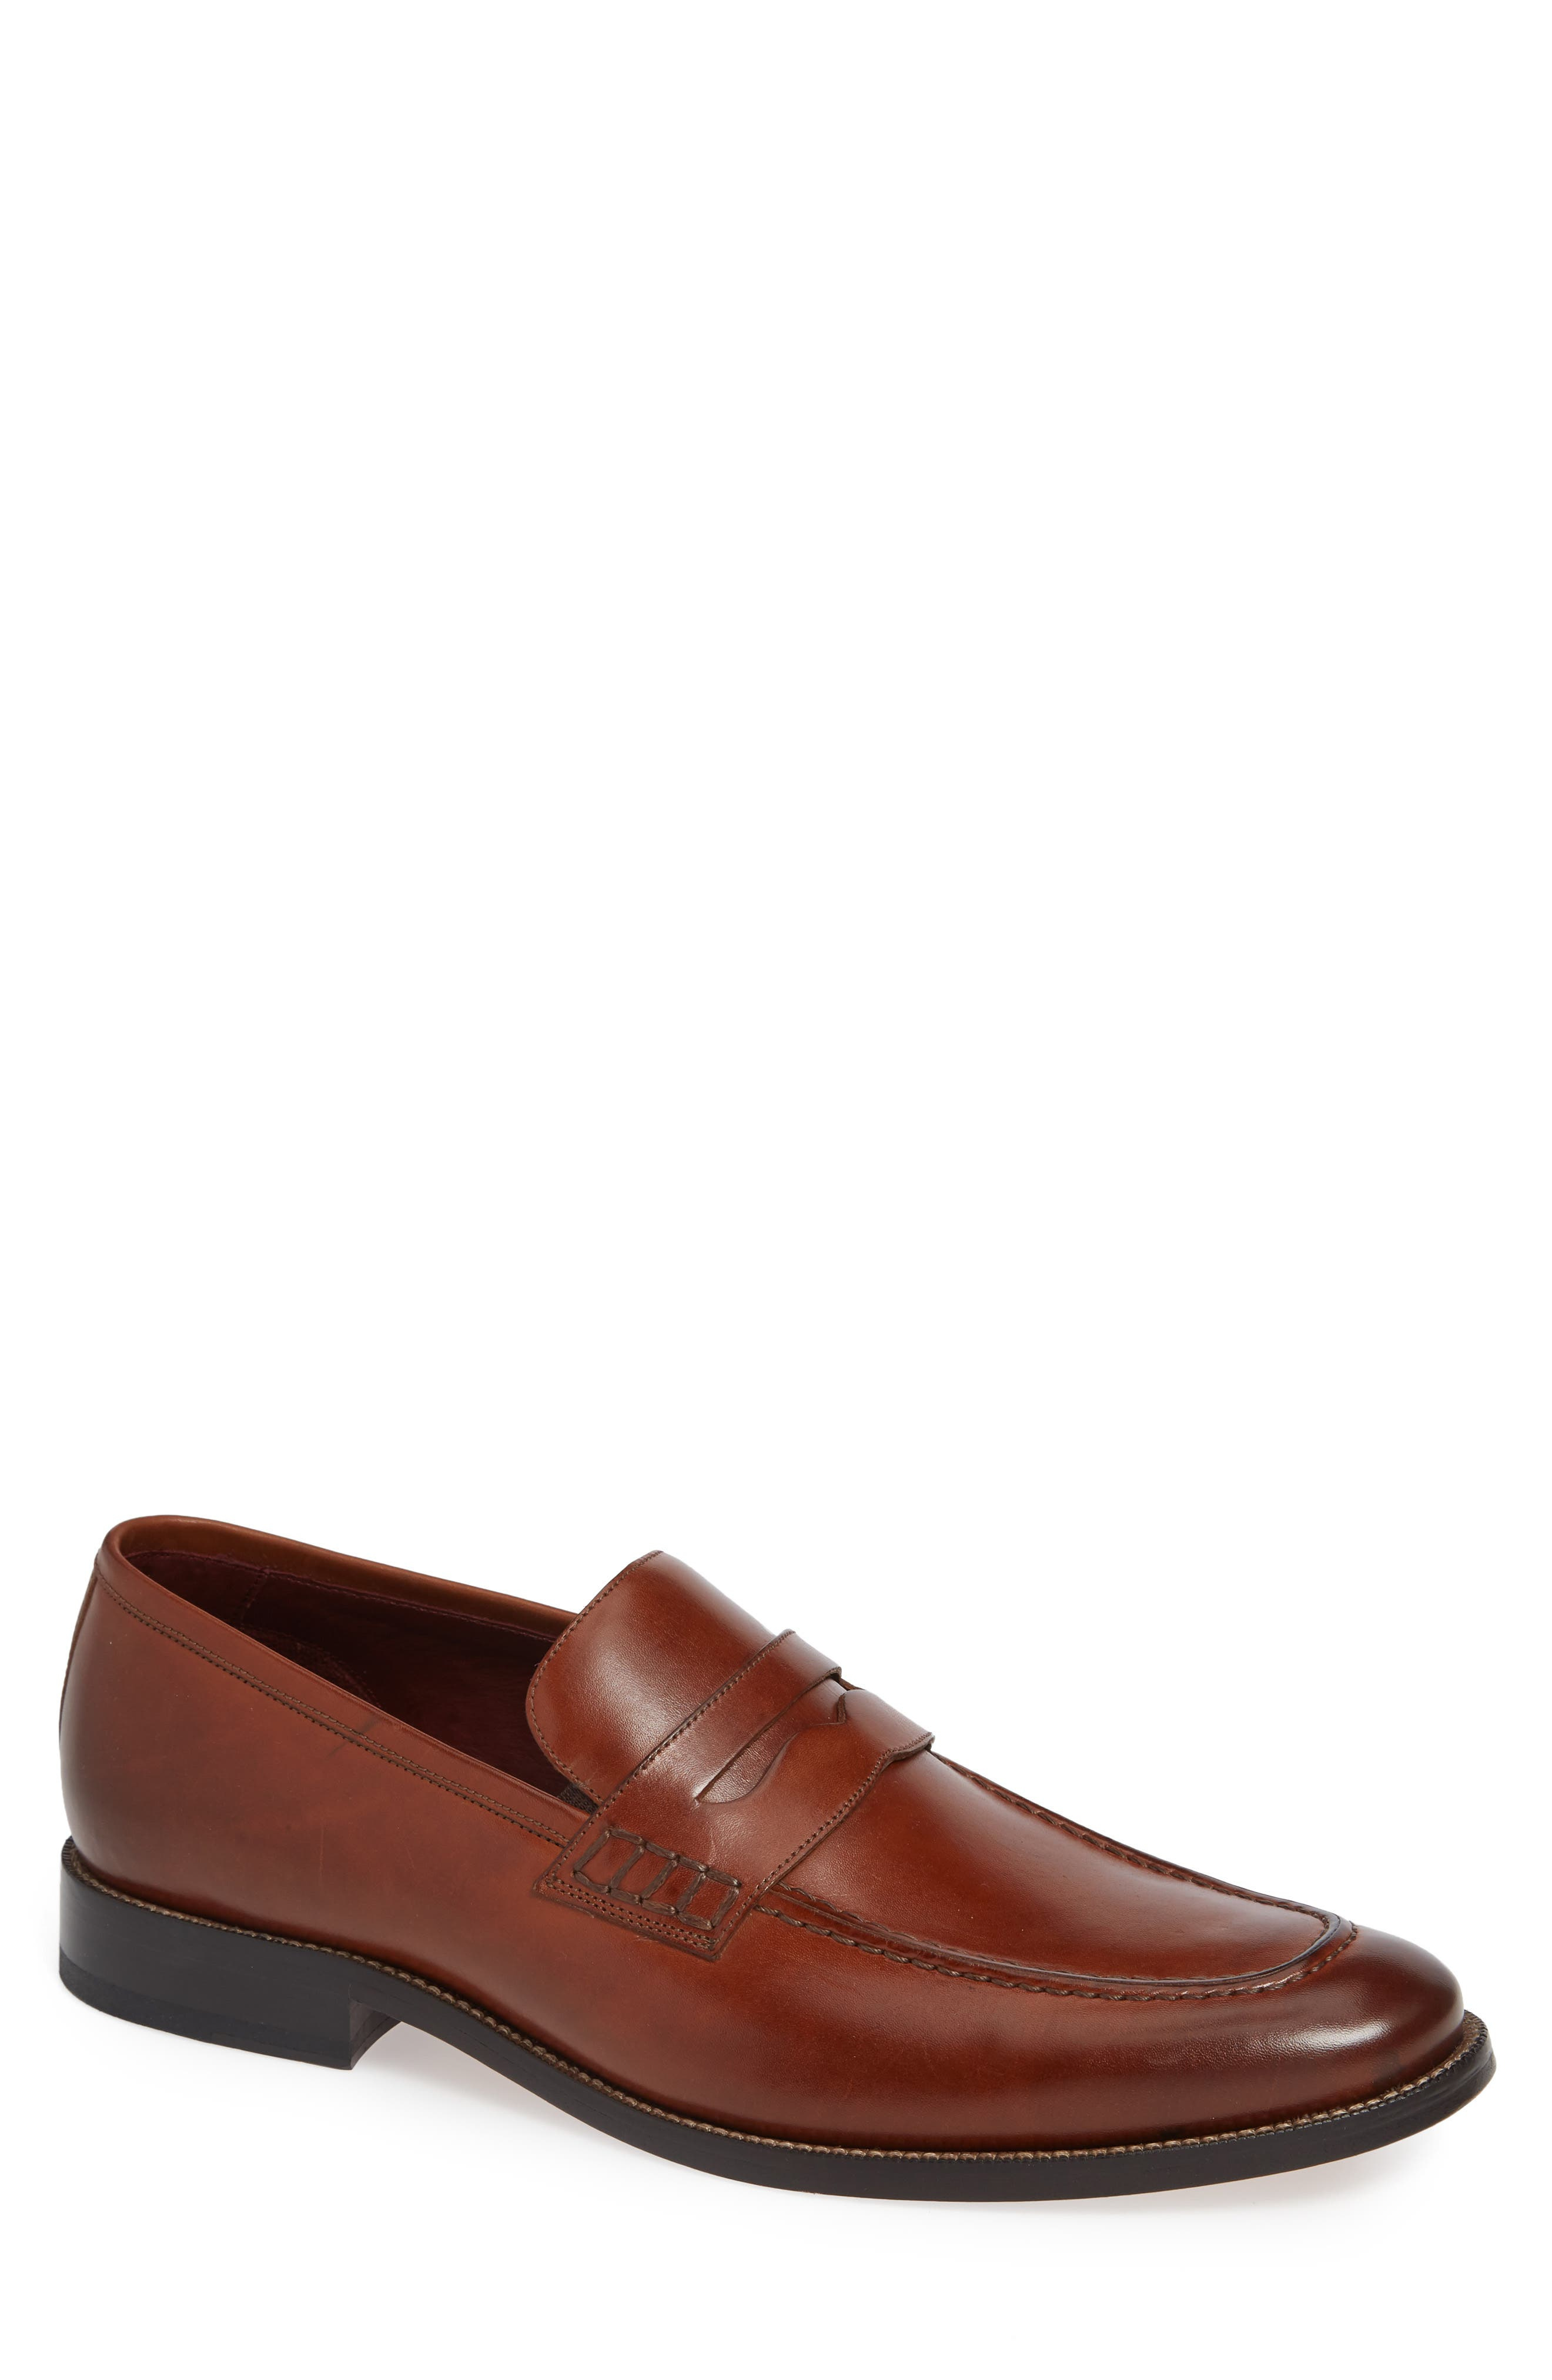 NORDSTROM MEN'S SHOP, Michael Penny Loafer, Main thumbnail 1, color, TAN LEATHER